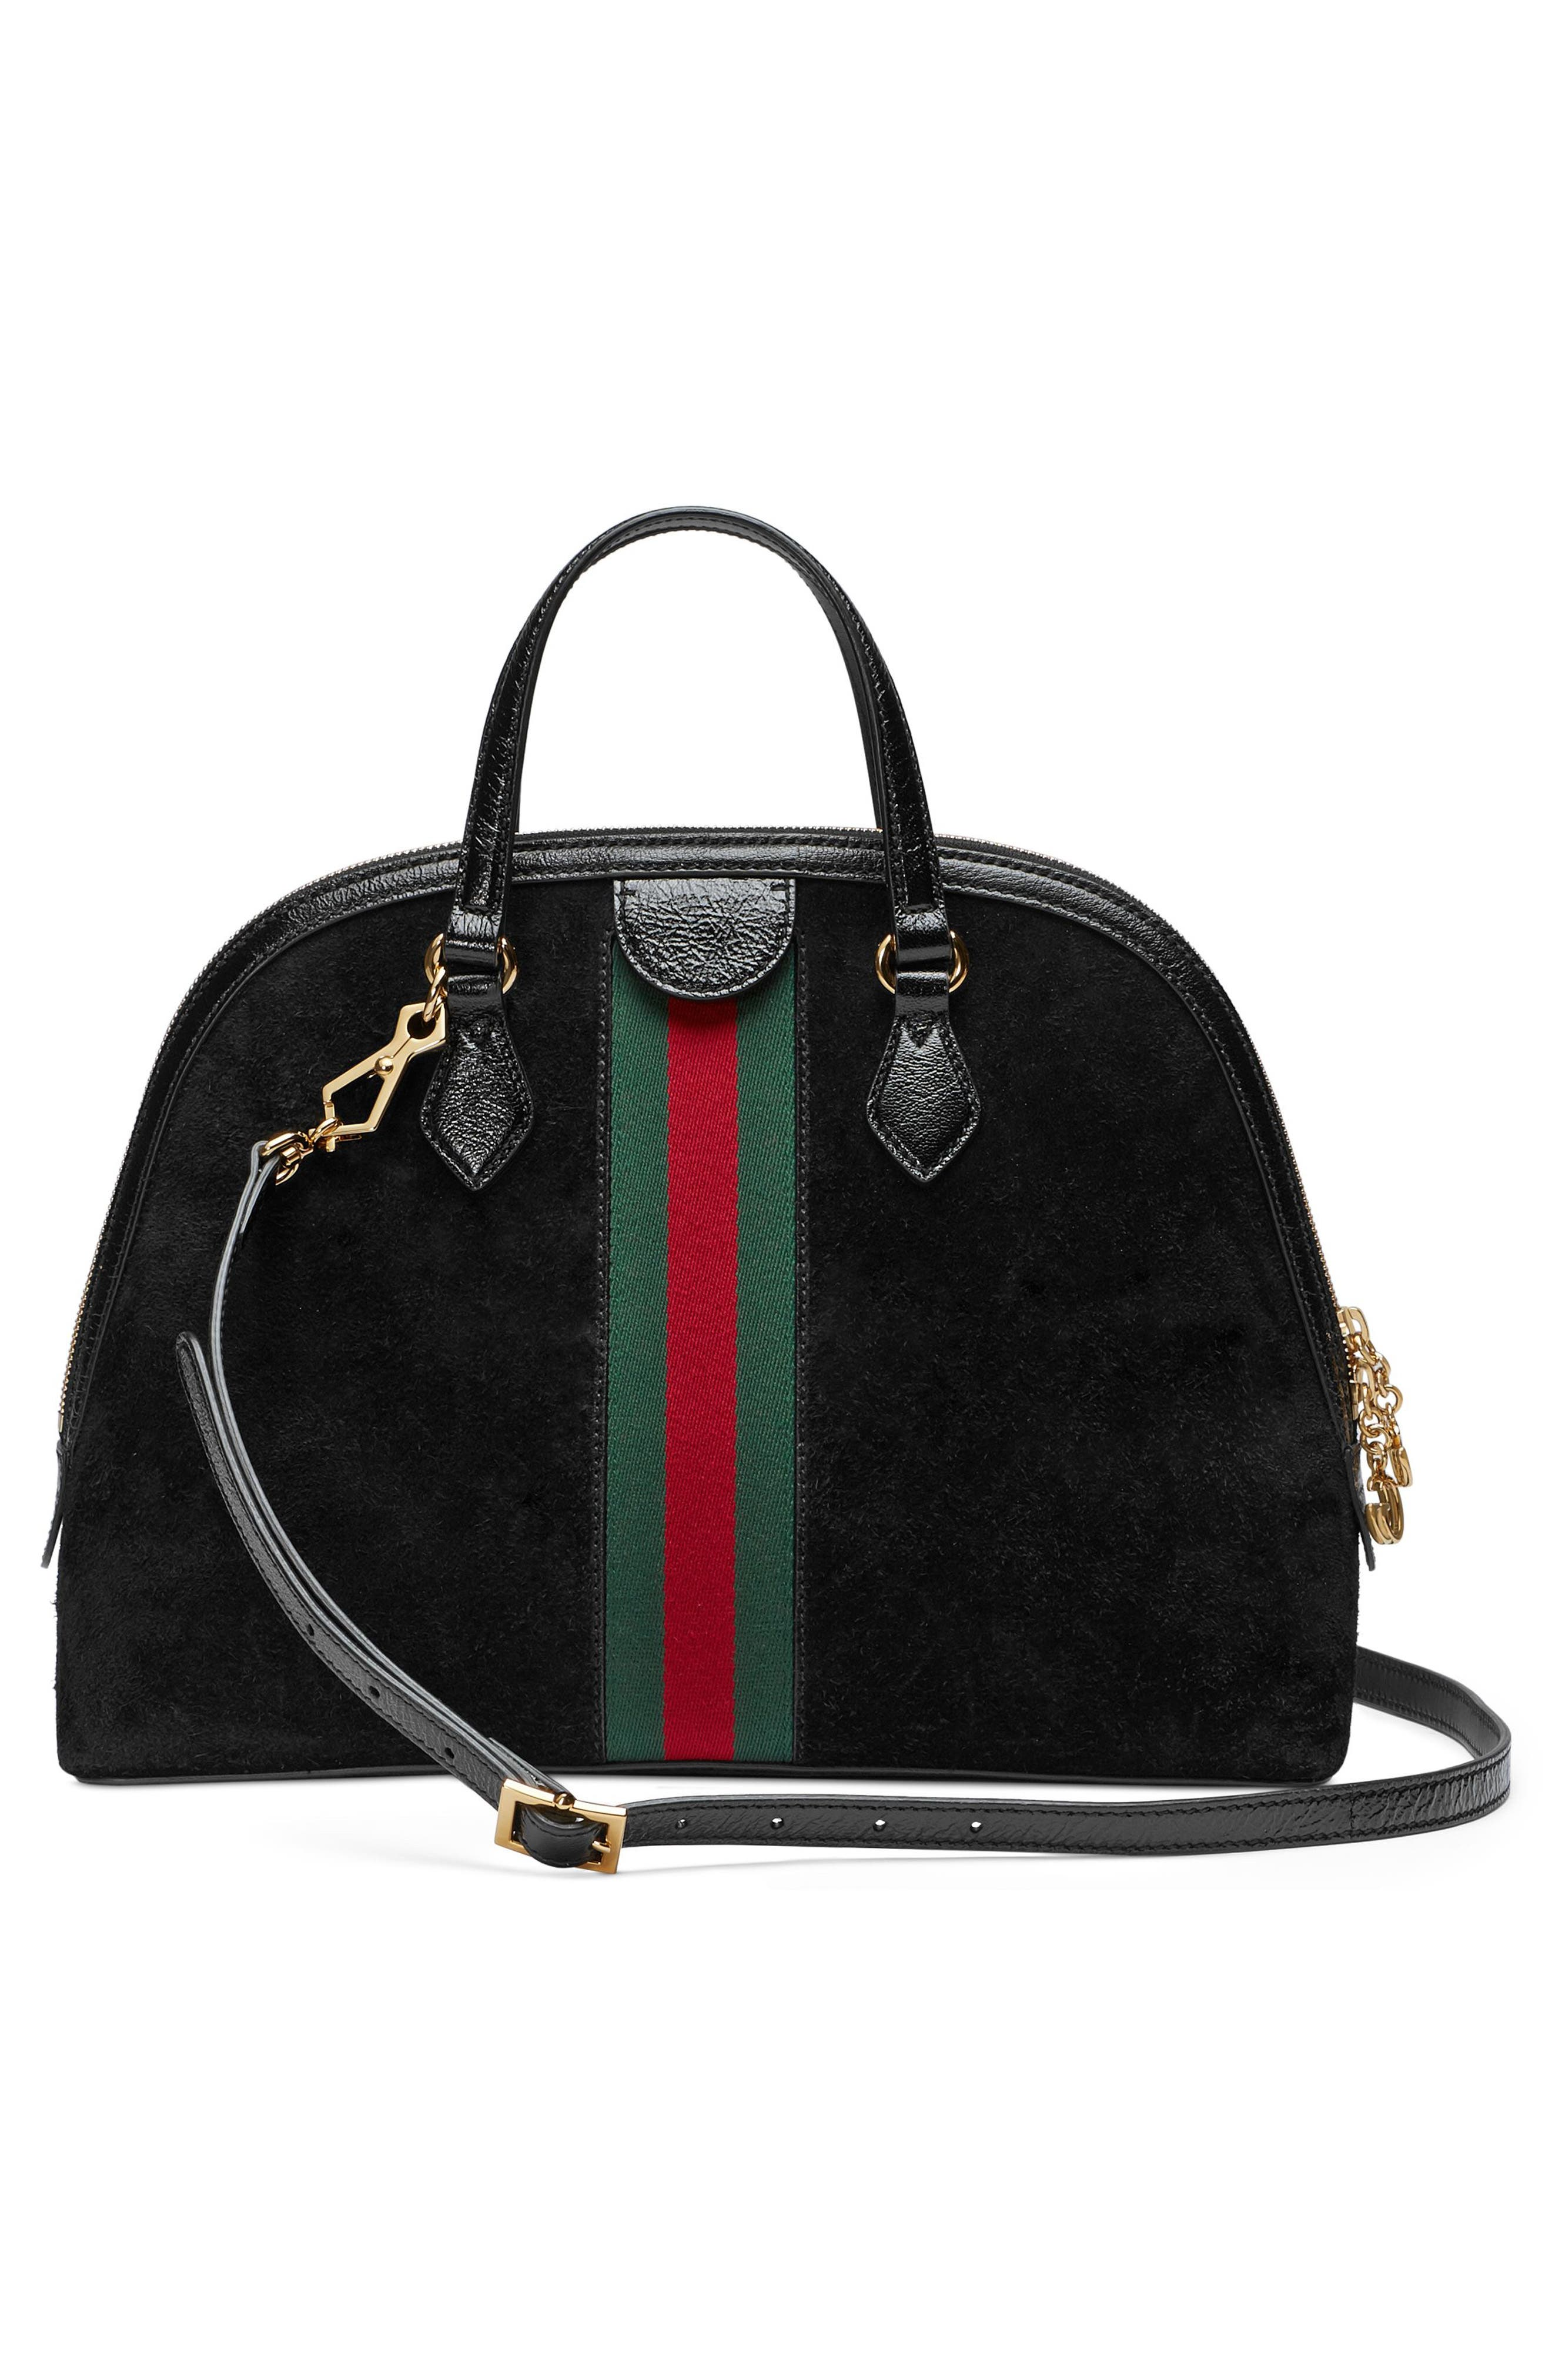 Ophidia Suede Dome Satchel,                             Alternate thumbnail 2, color,                             Nero/ Nero/ Vert Red Vert